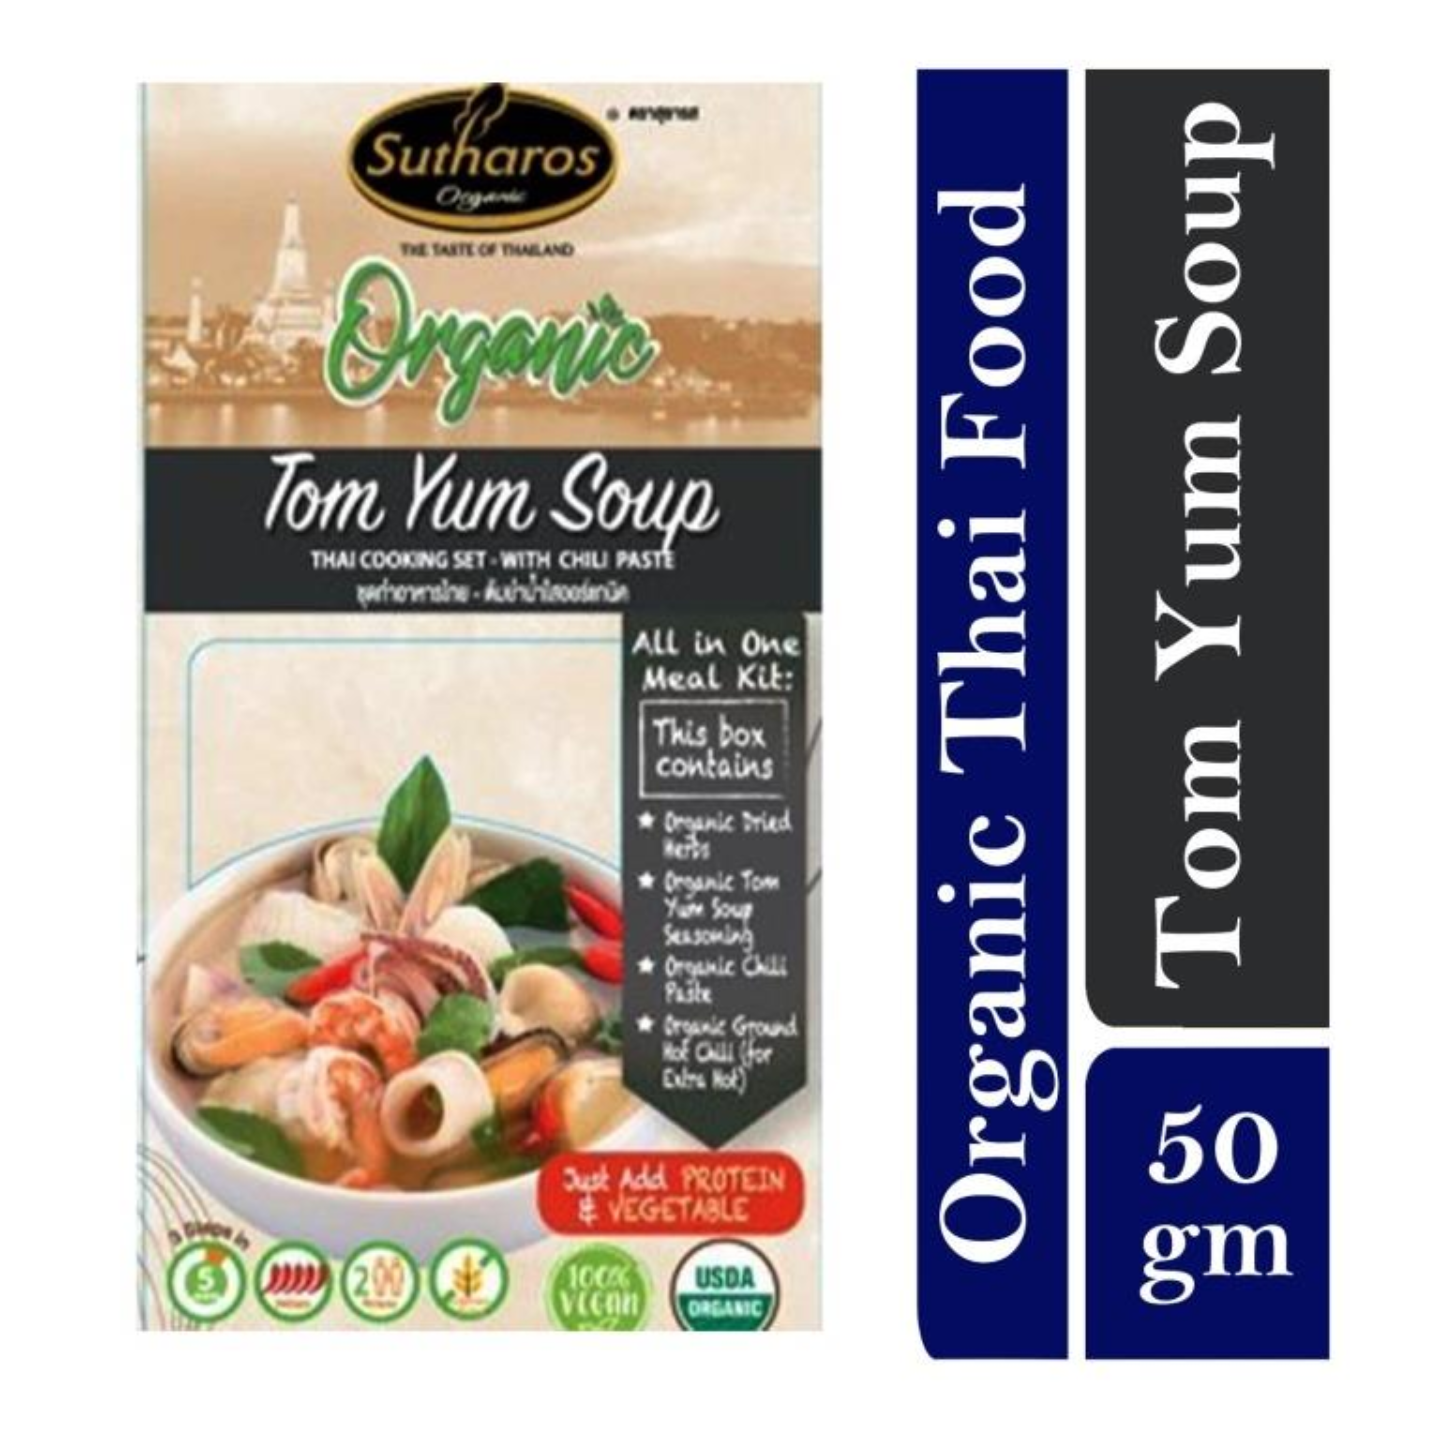 Sutharos Organic Thai Tom Yum Soup 1 x 50gm